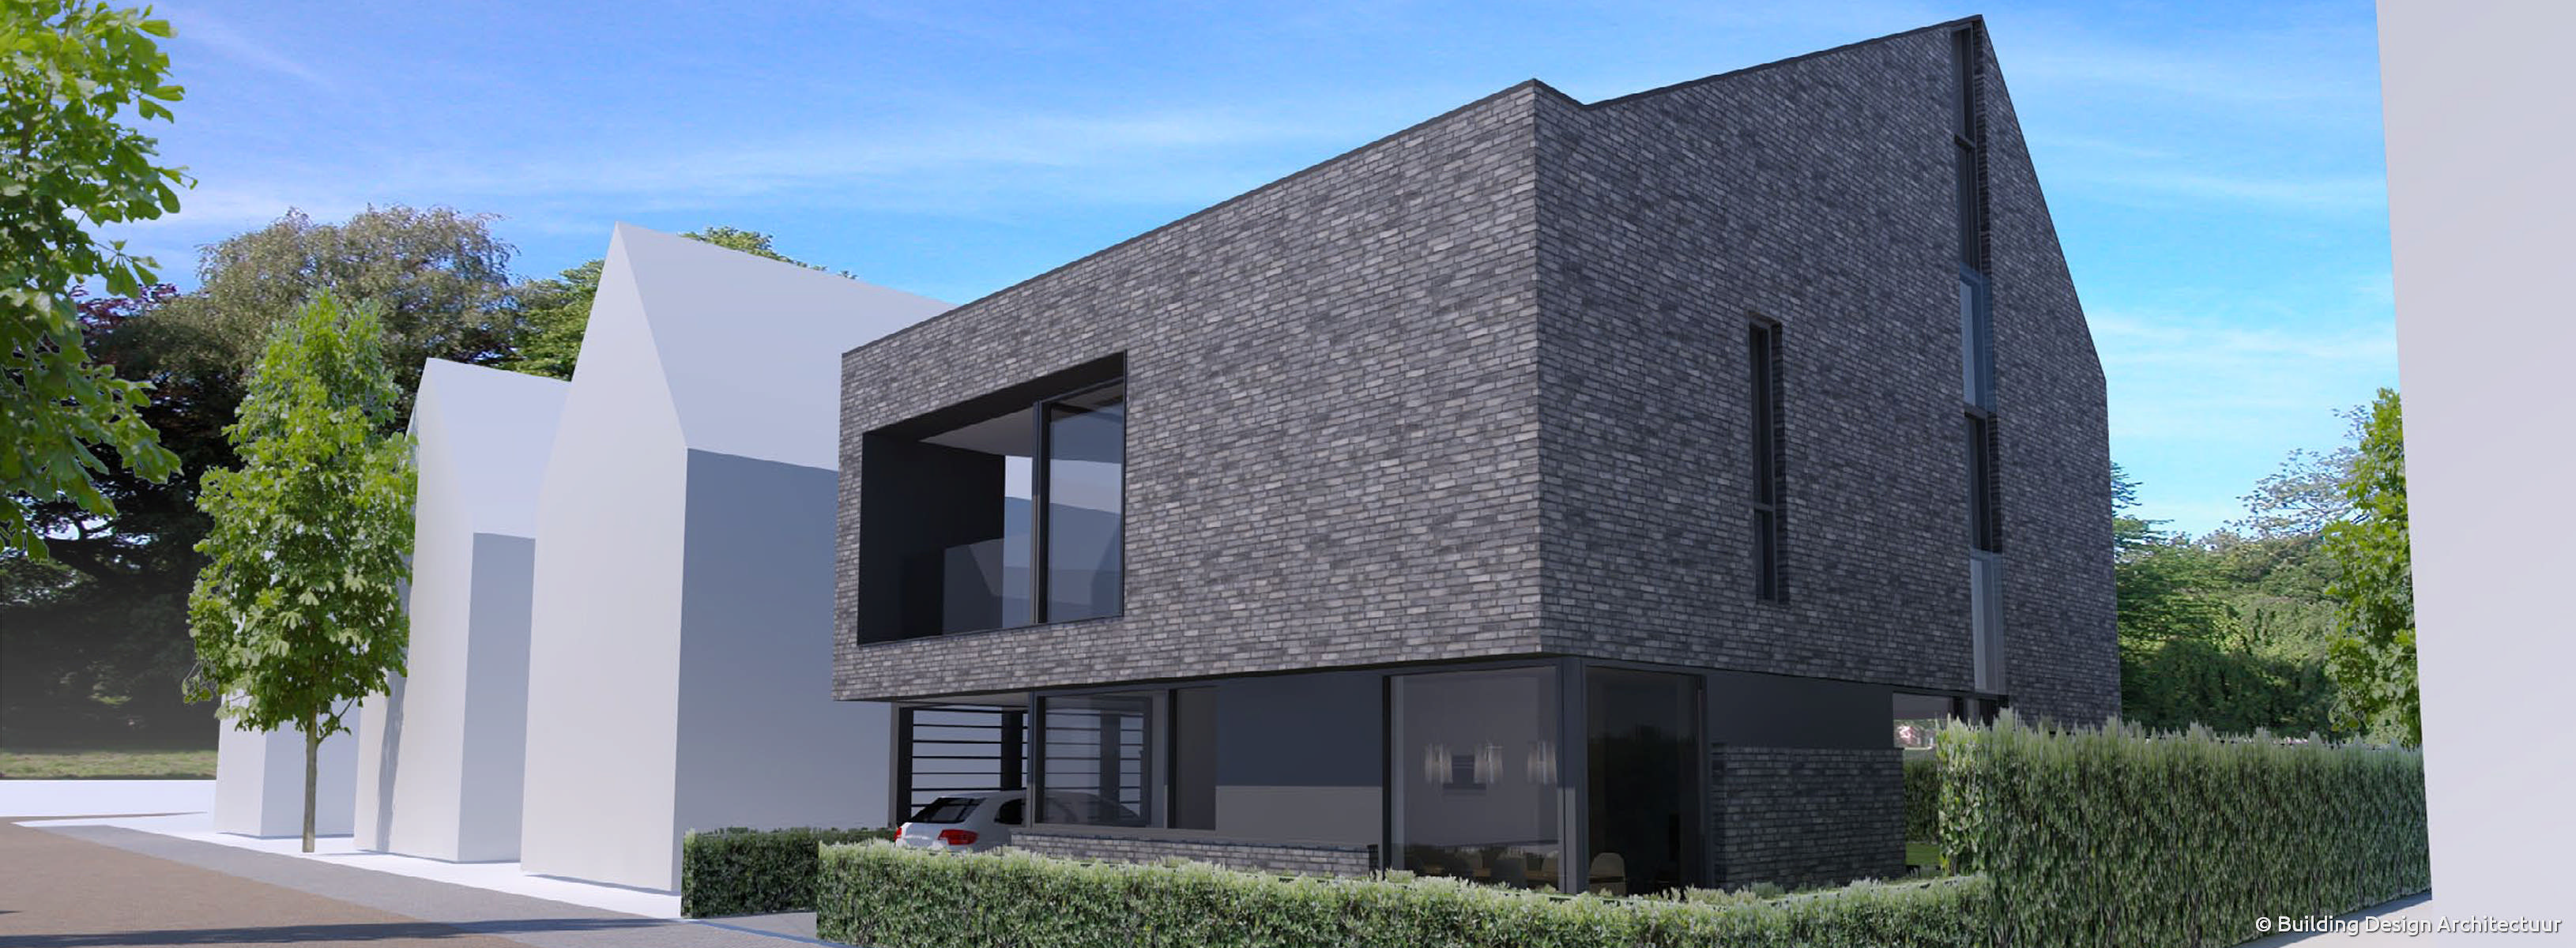 Building design architectuur - Moderne interieurarchitectuur ...